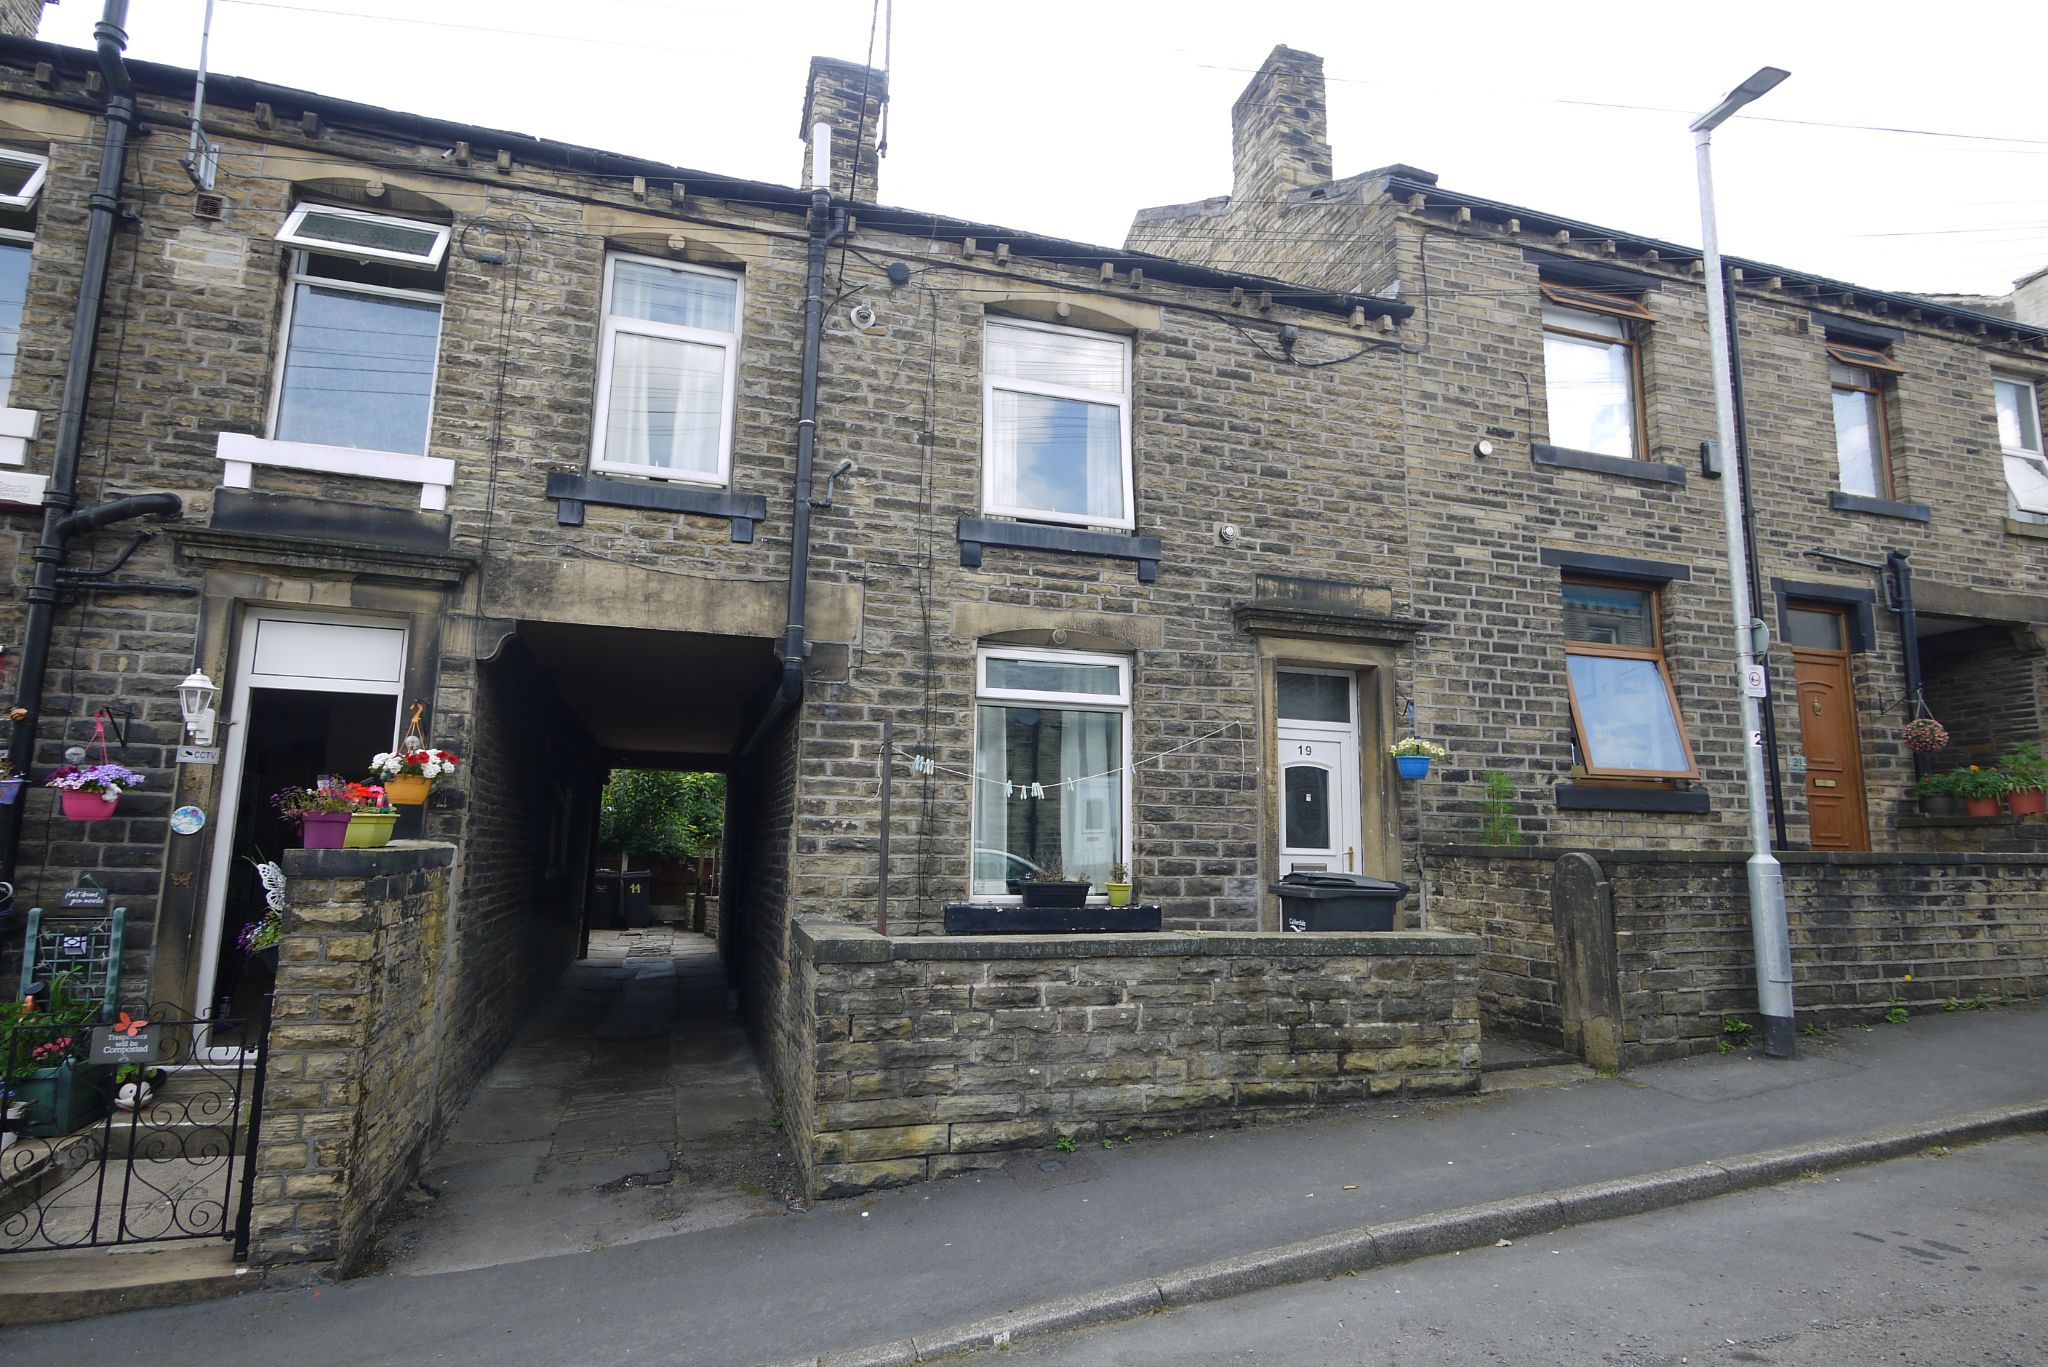 2 bedroom mid terraced house SSTC in Brighouse - External.